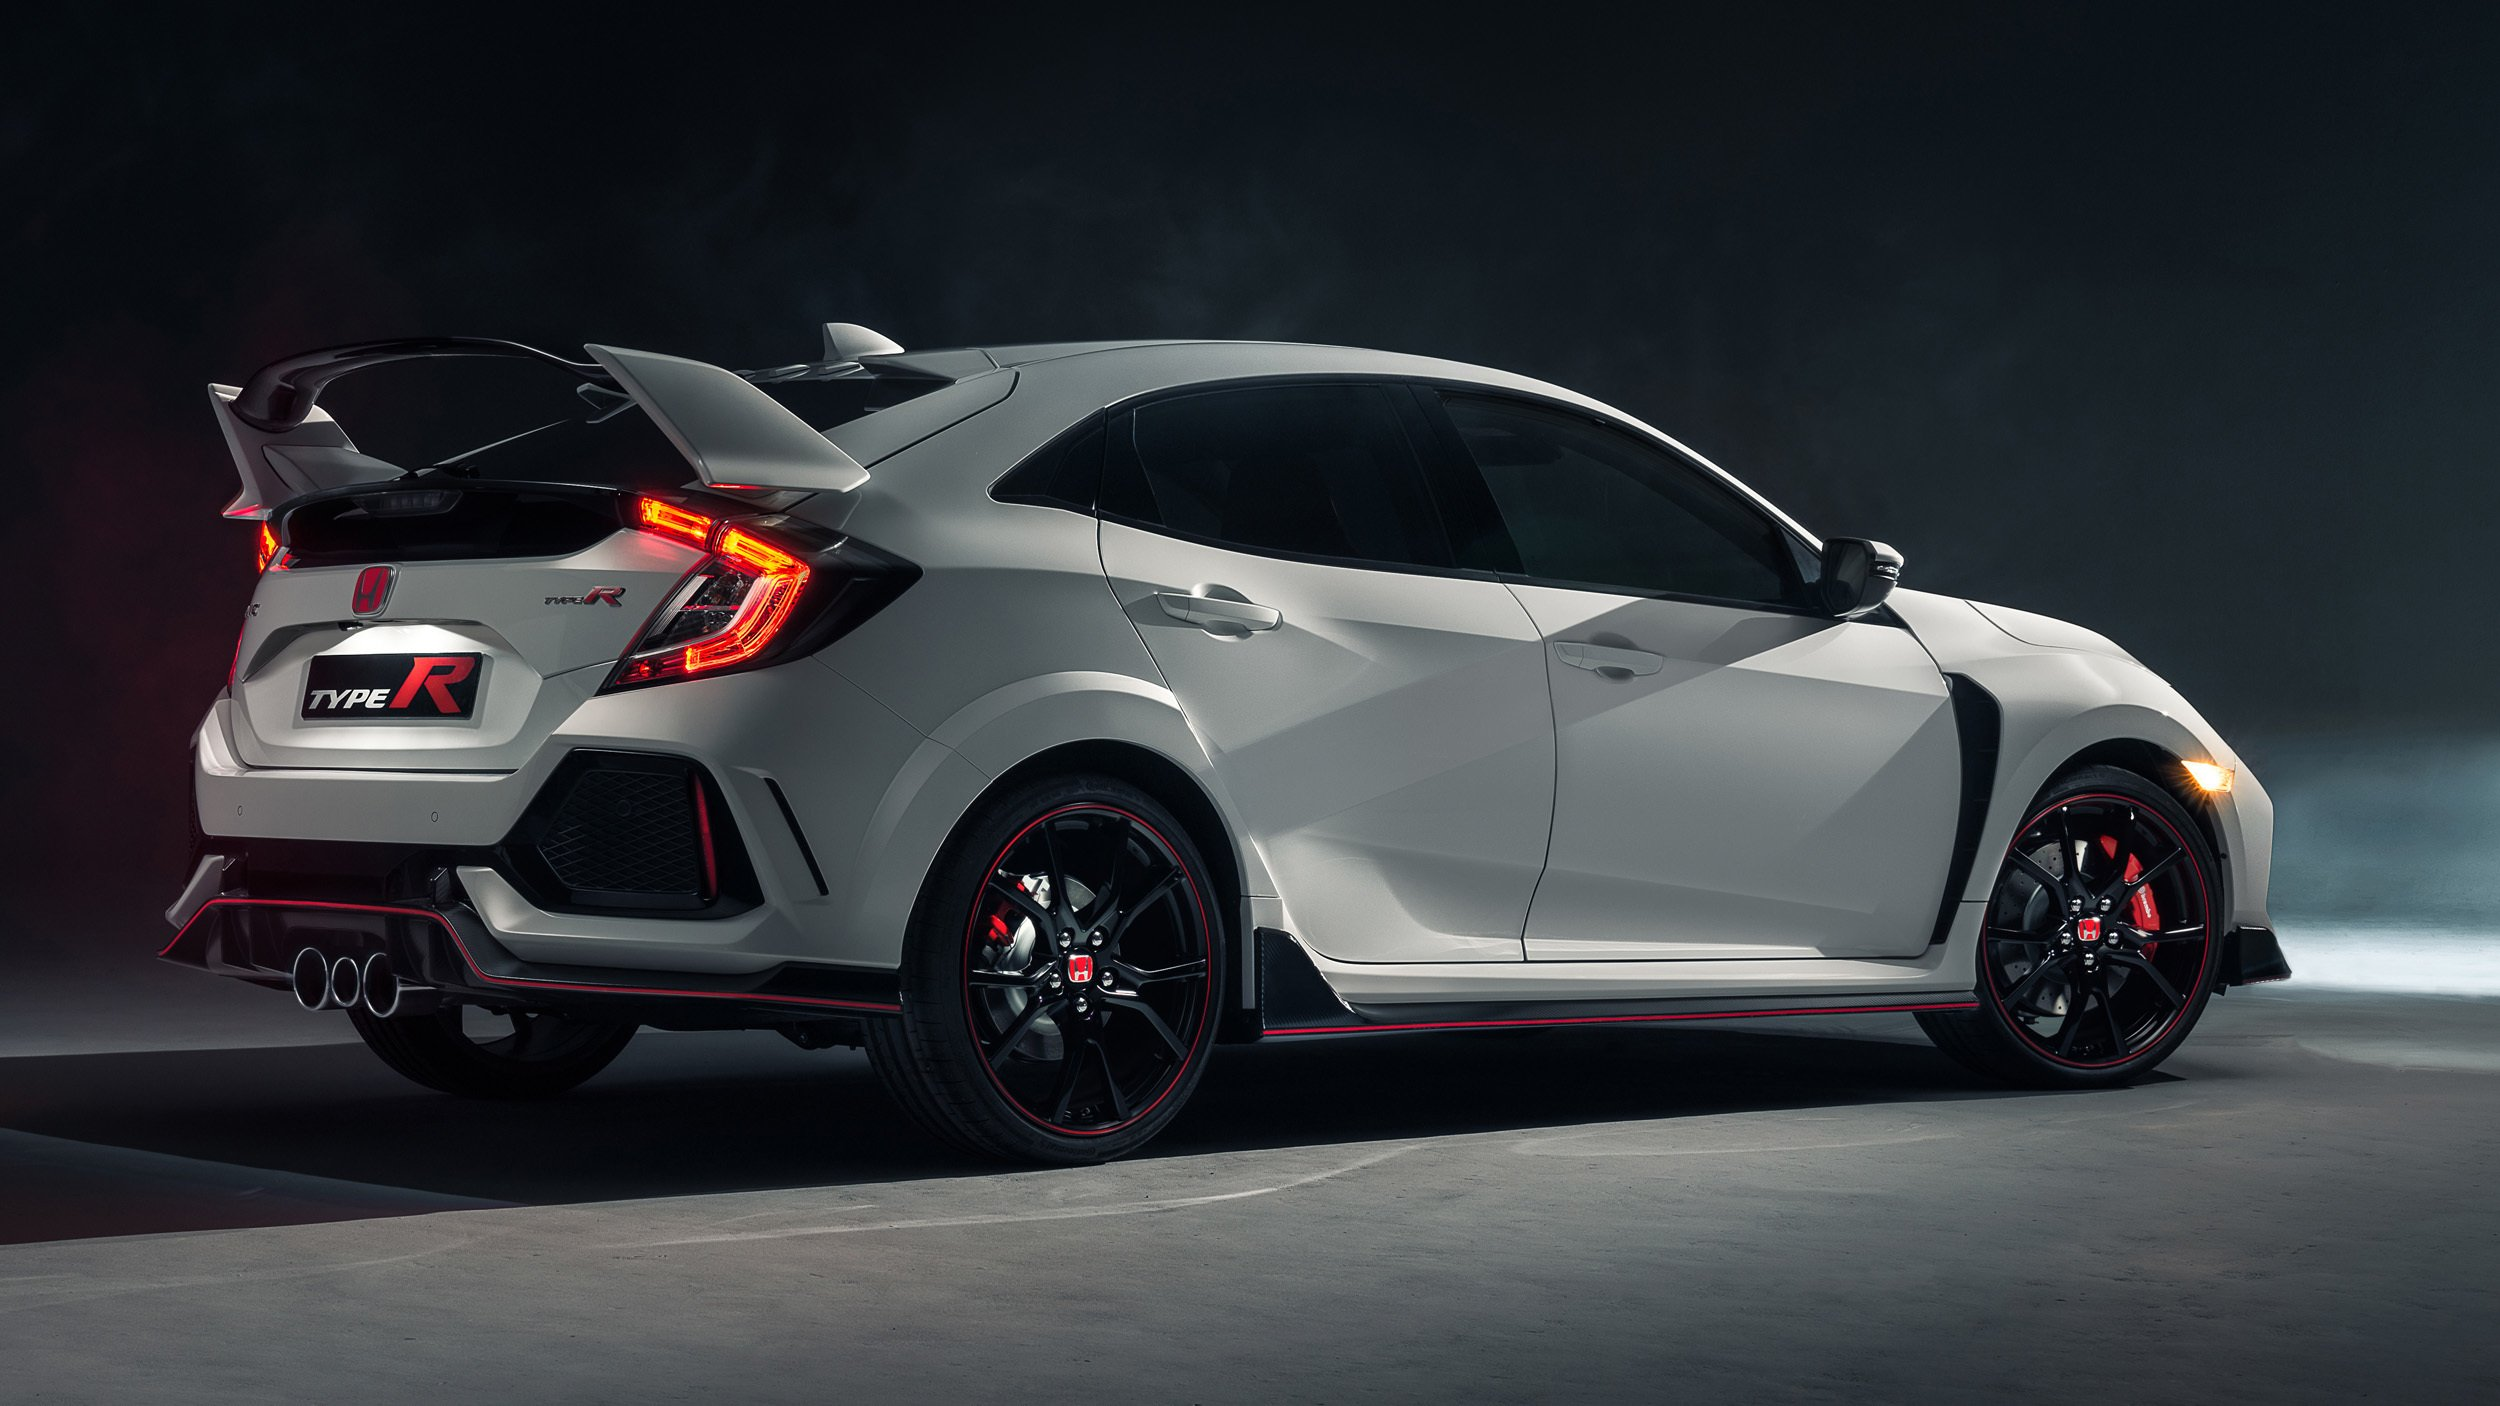 2017 honda civic type r revealed in geneva here later. Black Bedroom Furniture Sets. Home Design Ideas